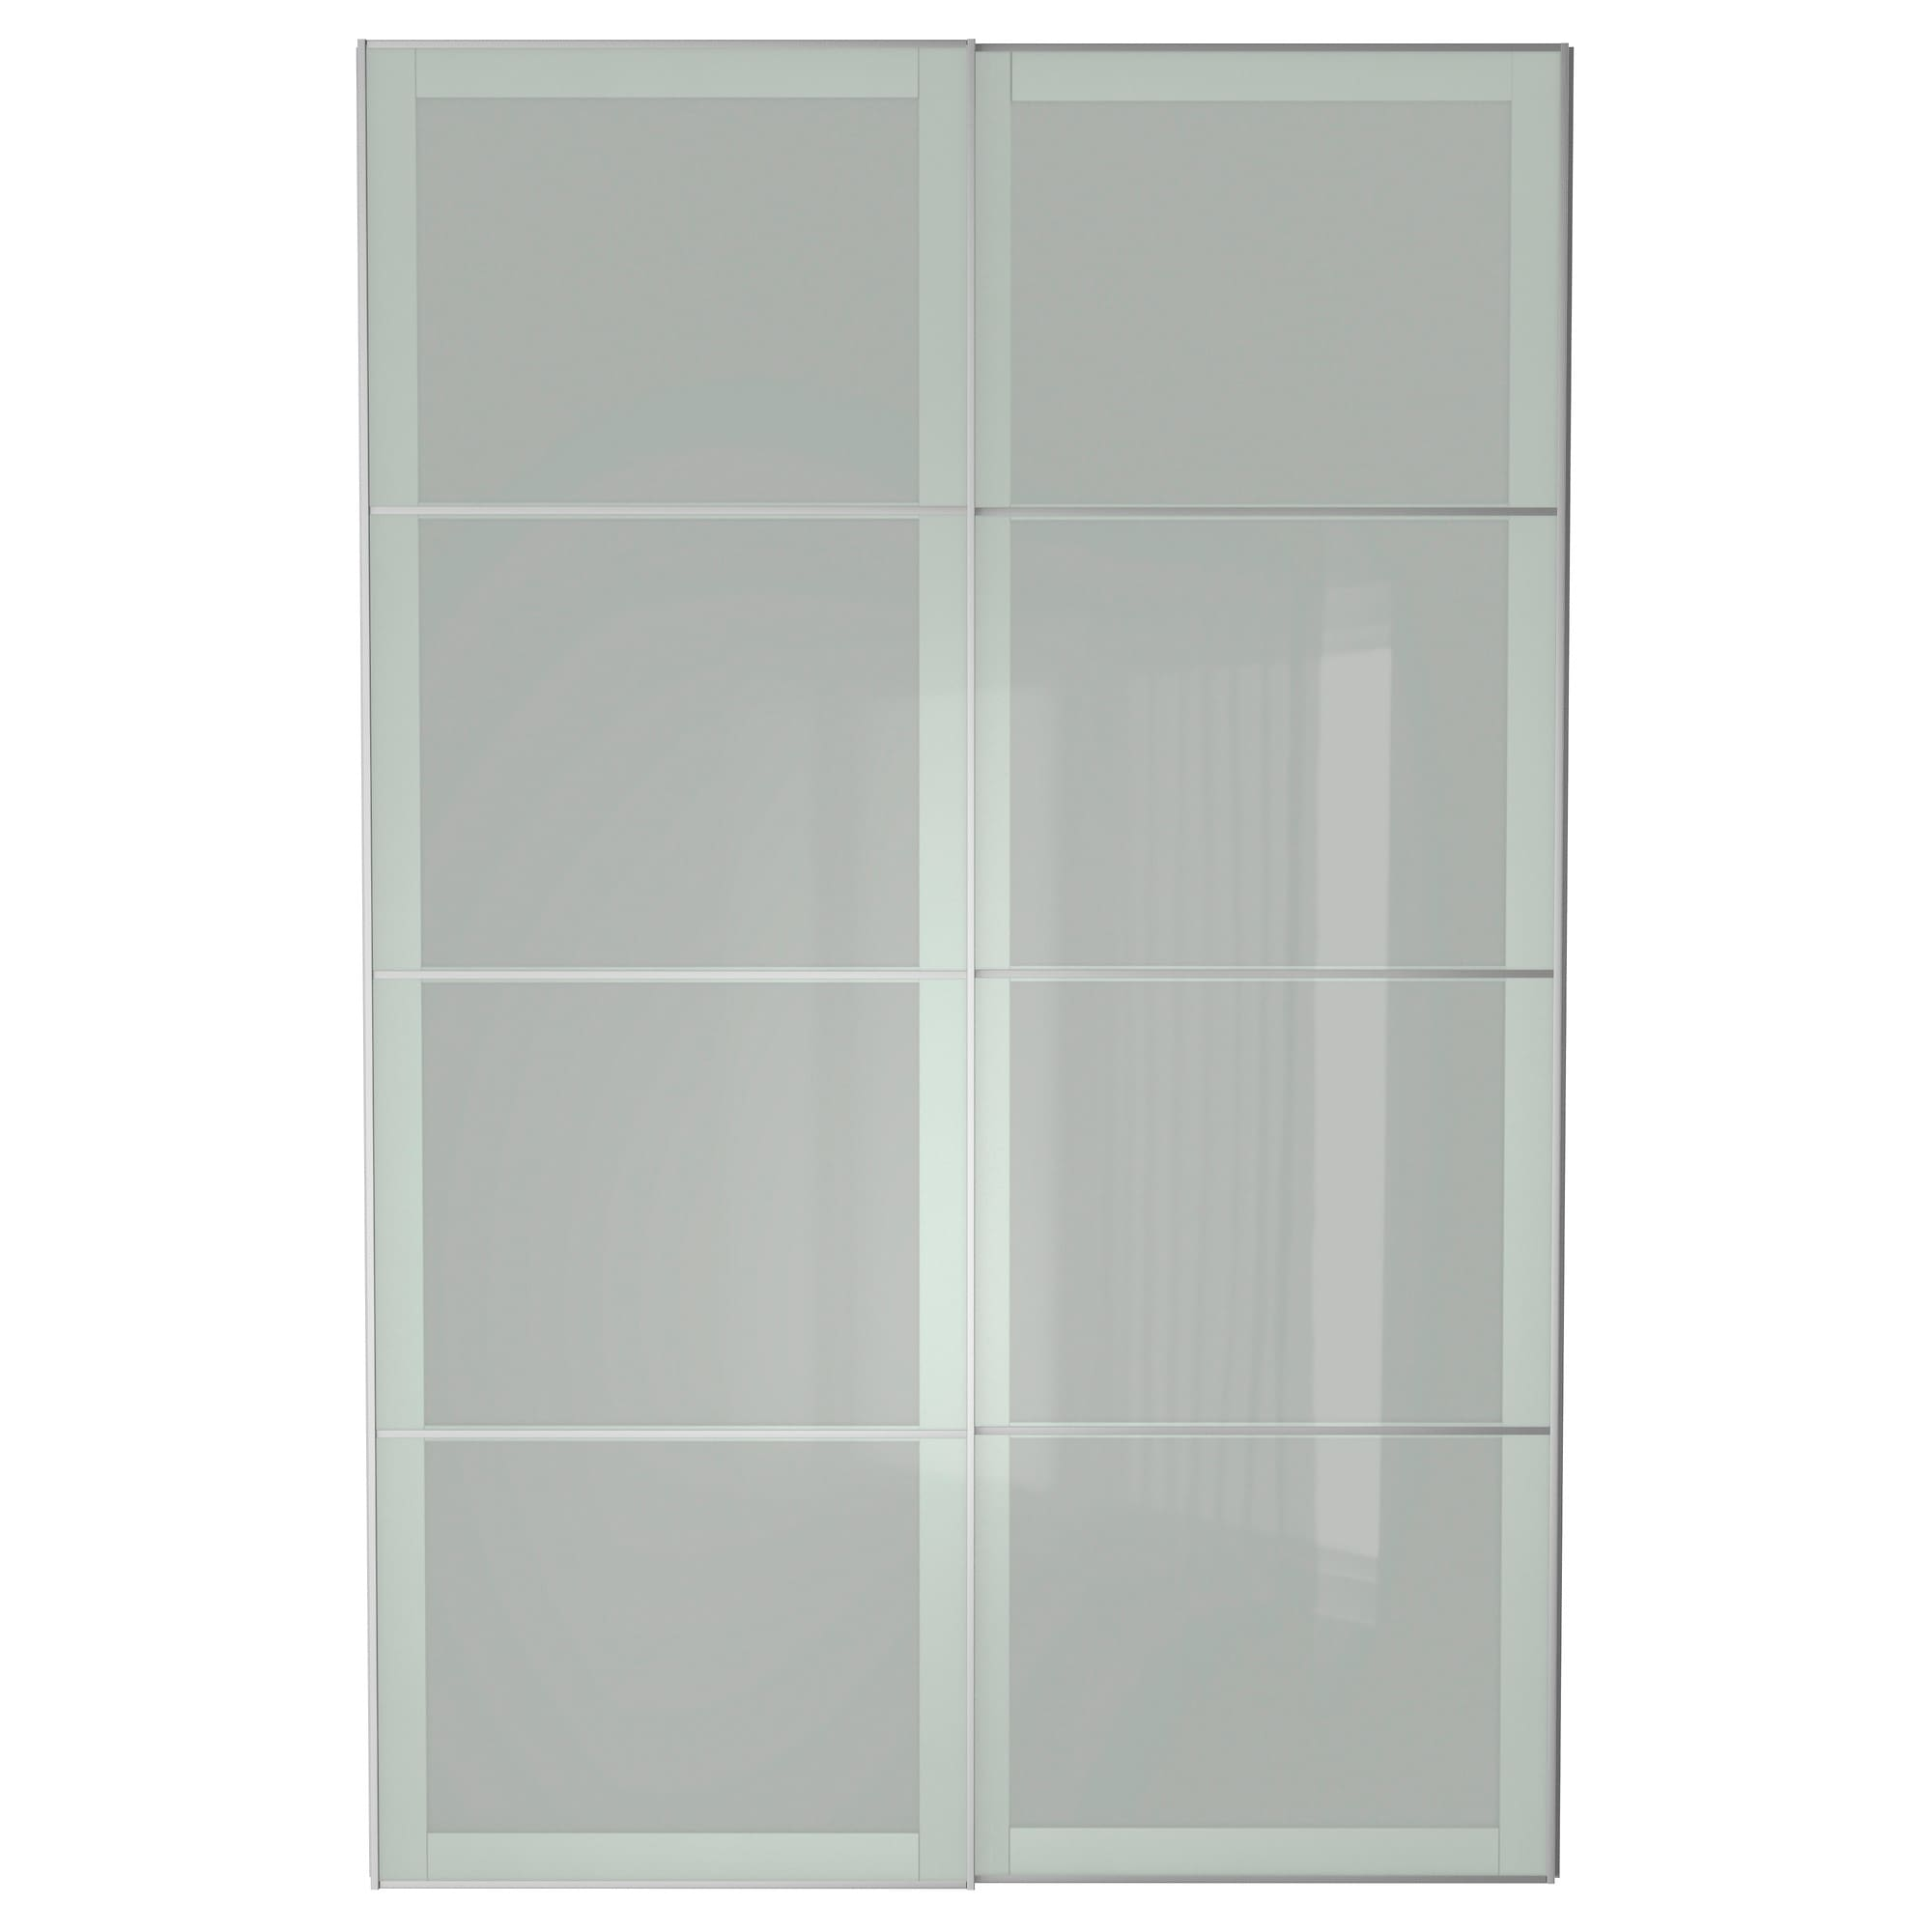 Interior sliding doors ikea - Sekken Pair Of Sliding Doors 78 3 4x92 7 8 Soft Closing Damper Ikea